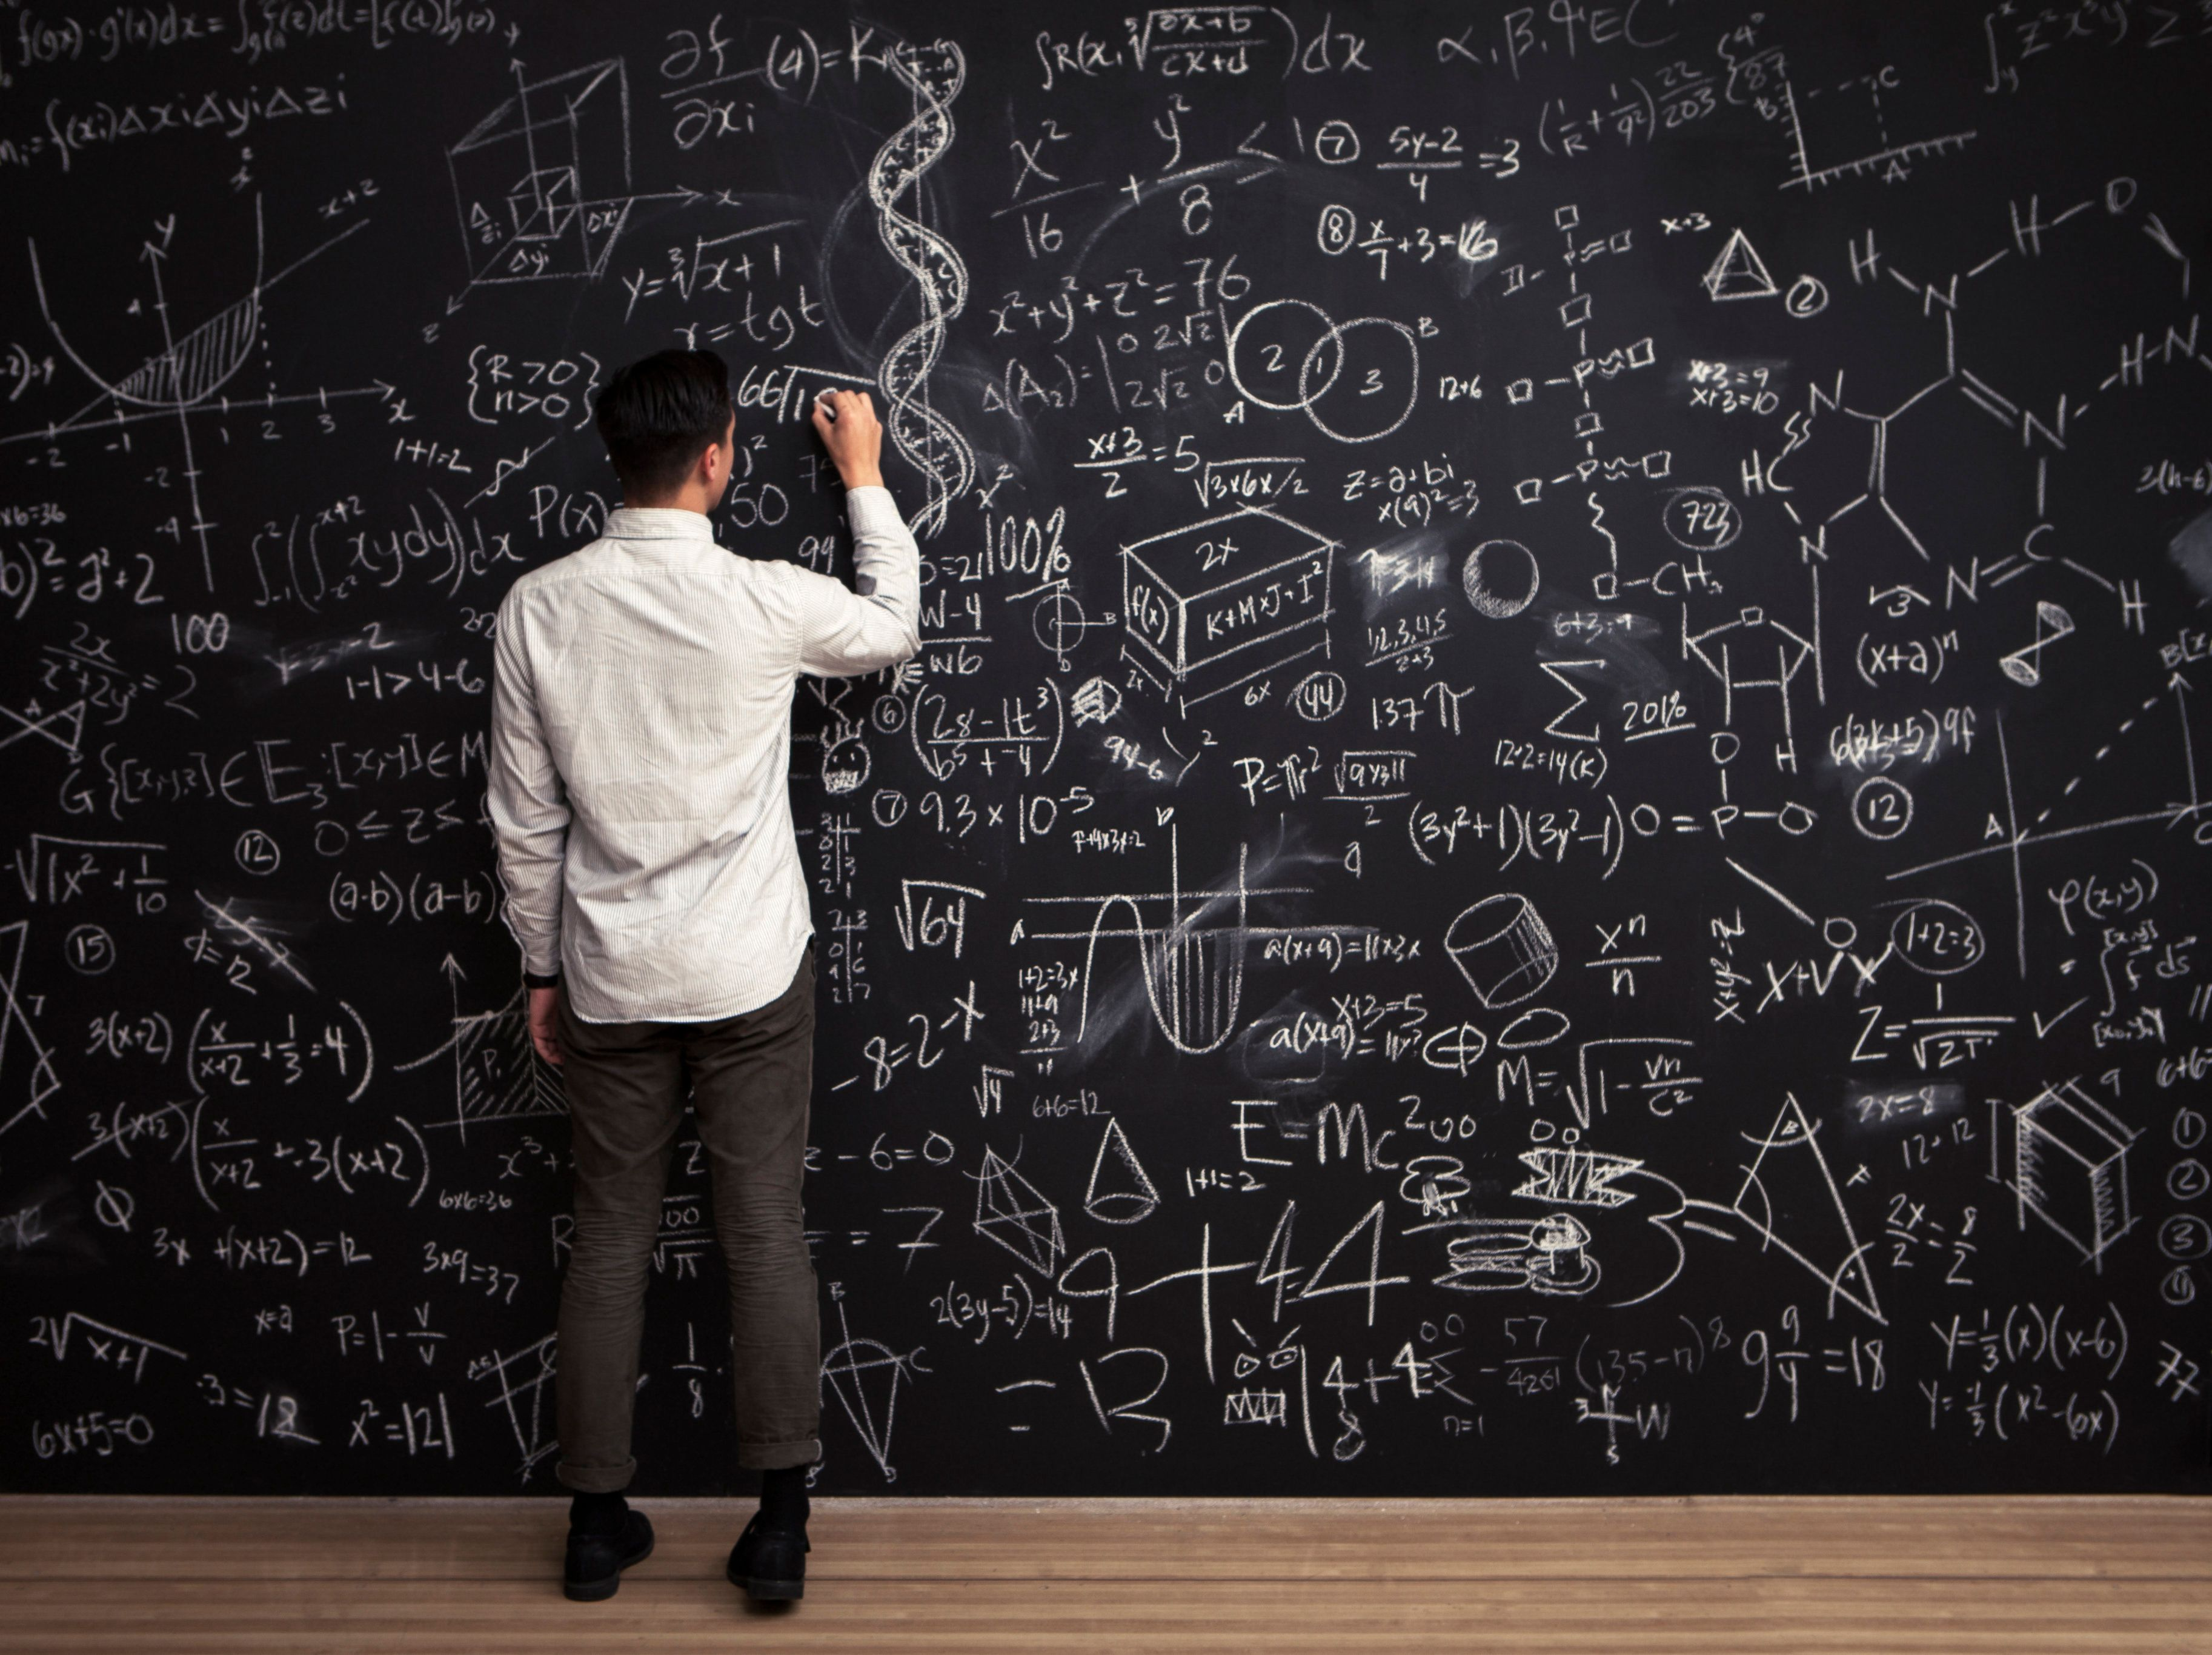 A young man writes on a chalkboard filled with mathematical equations, showing individuality, intelligence and creativity